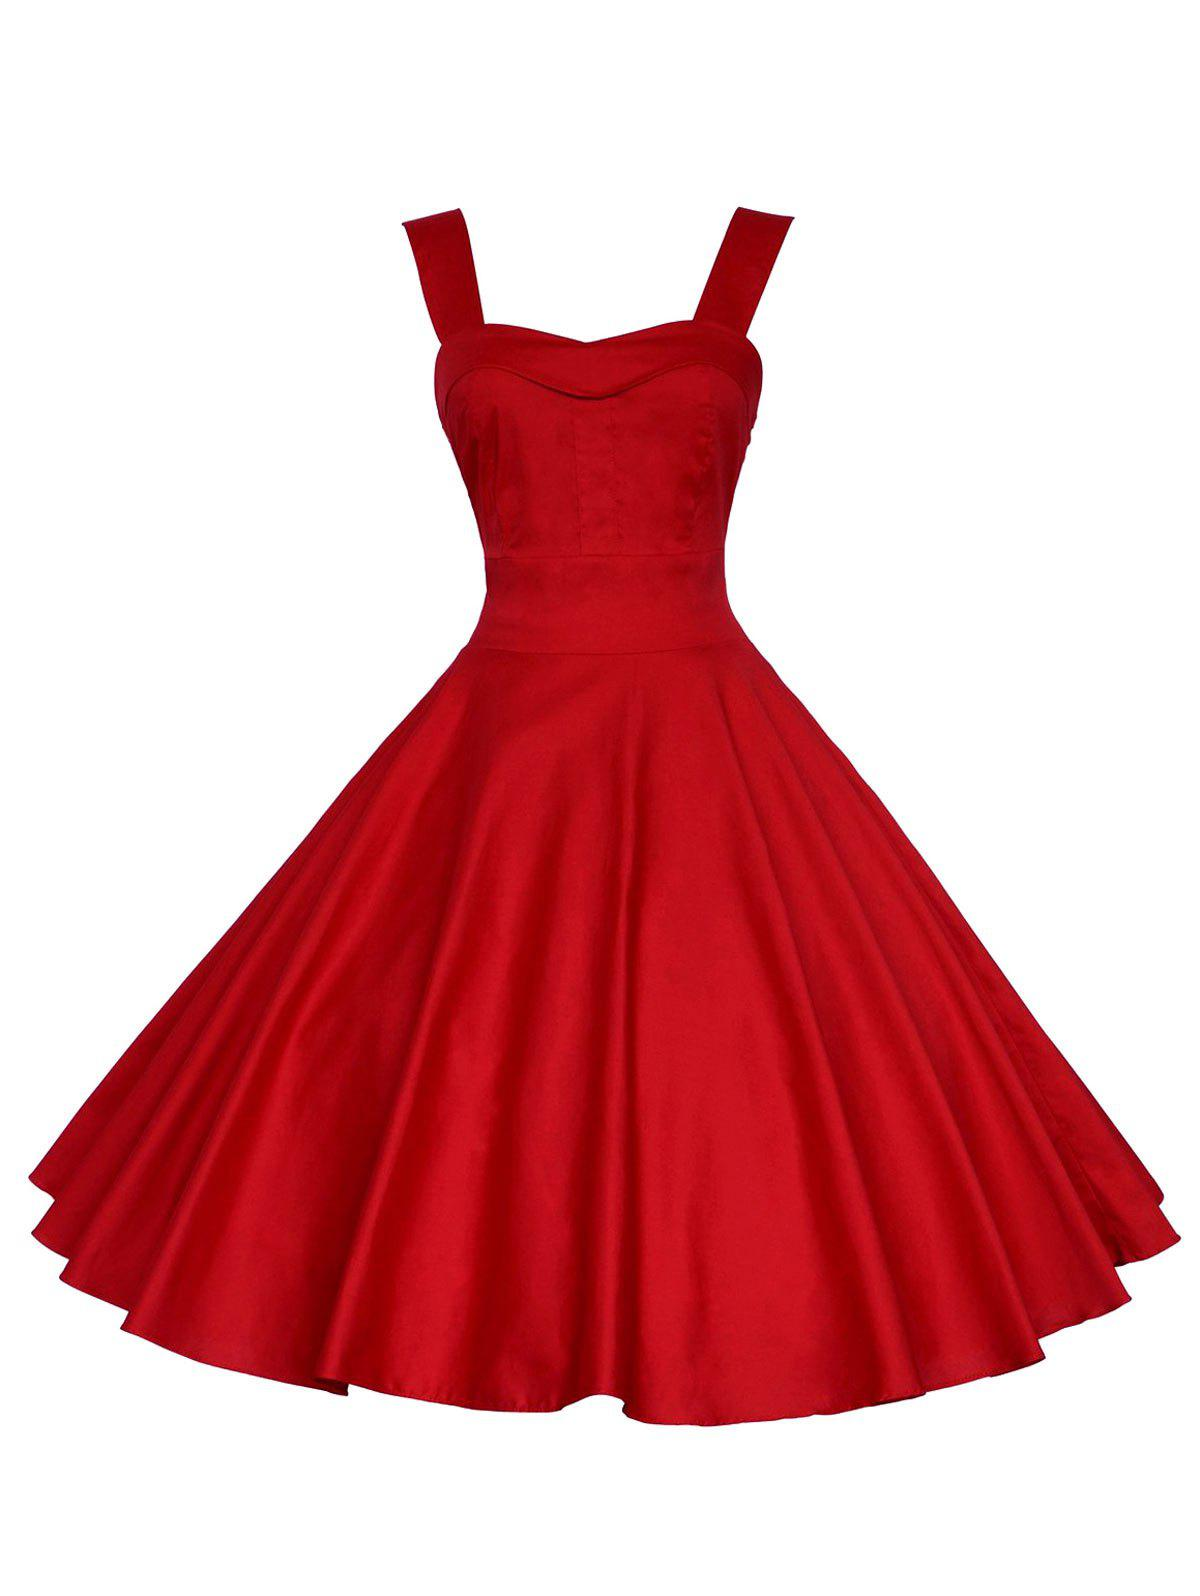 Shop Backless Mini Party Vintage Cocktail Swing Skater Dress